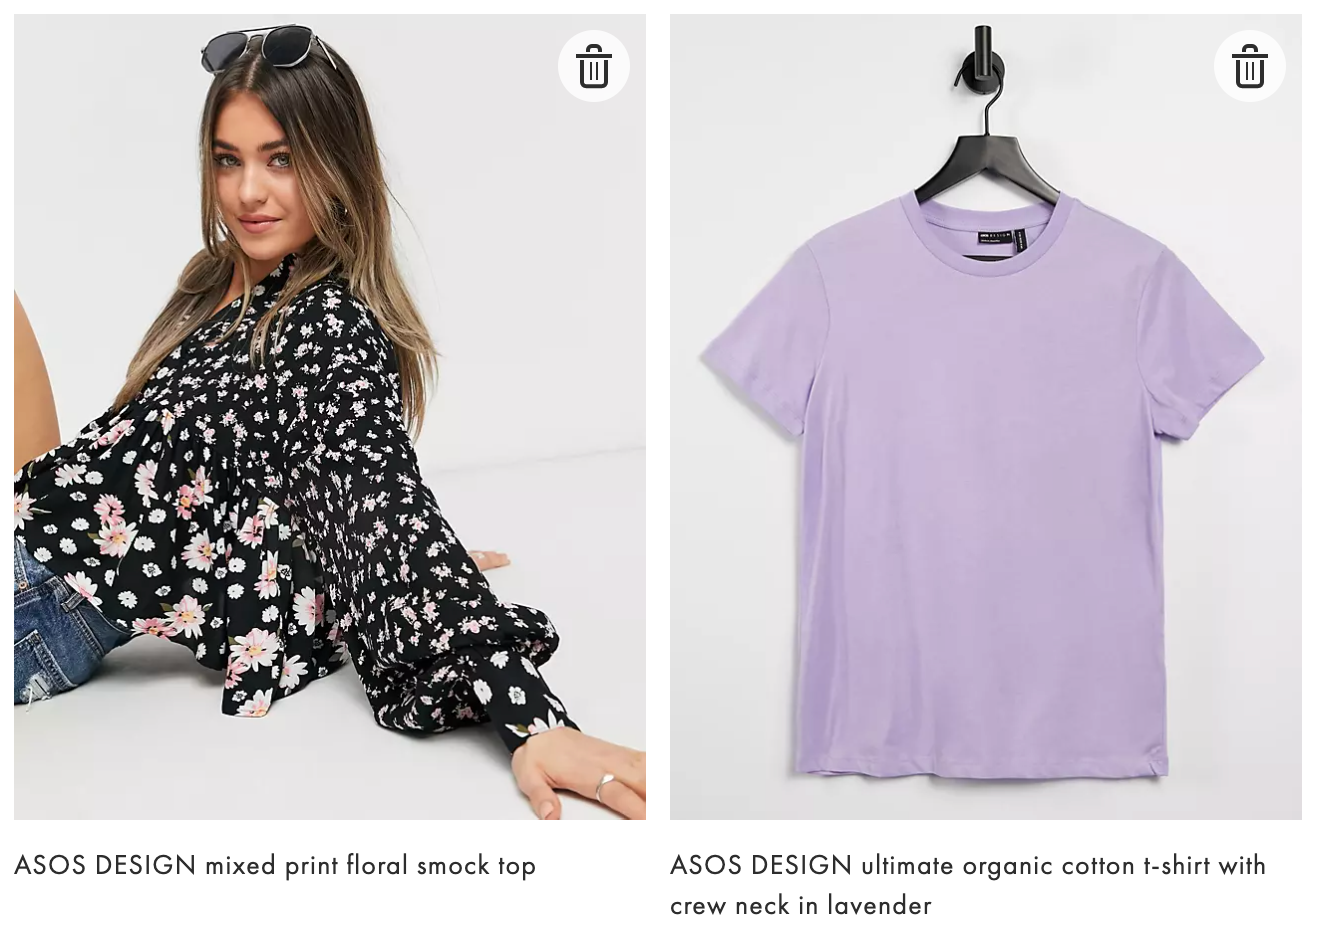 ASOS DESIGN mixed print floral smock top ASOS DESIGN ultimate organic cotton t-shirt with crew neck in lavender